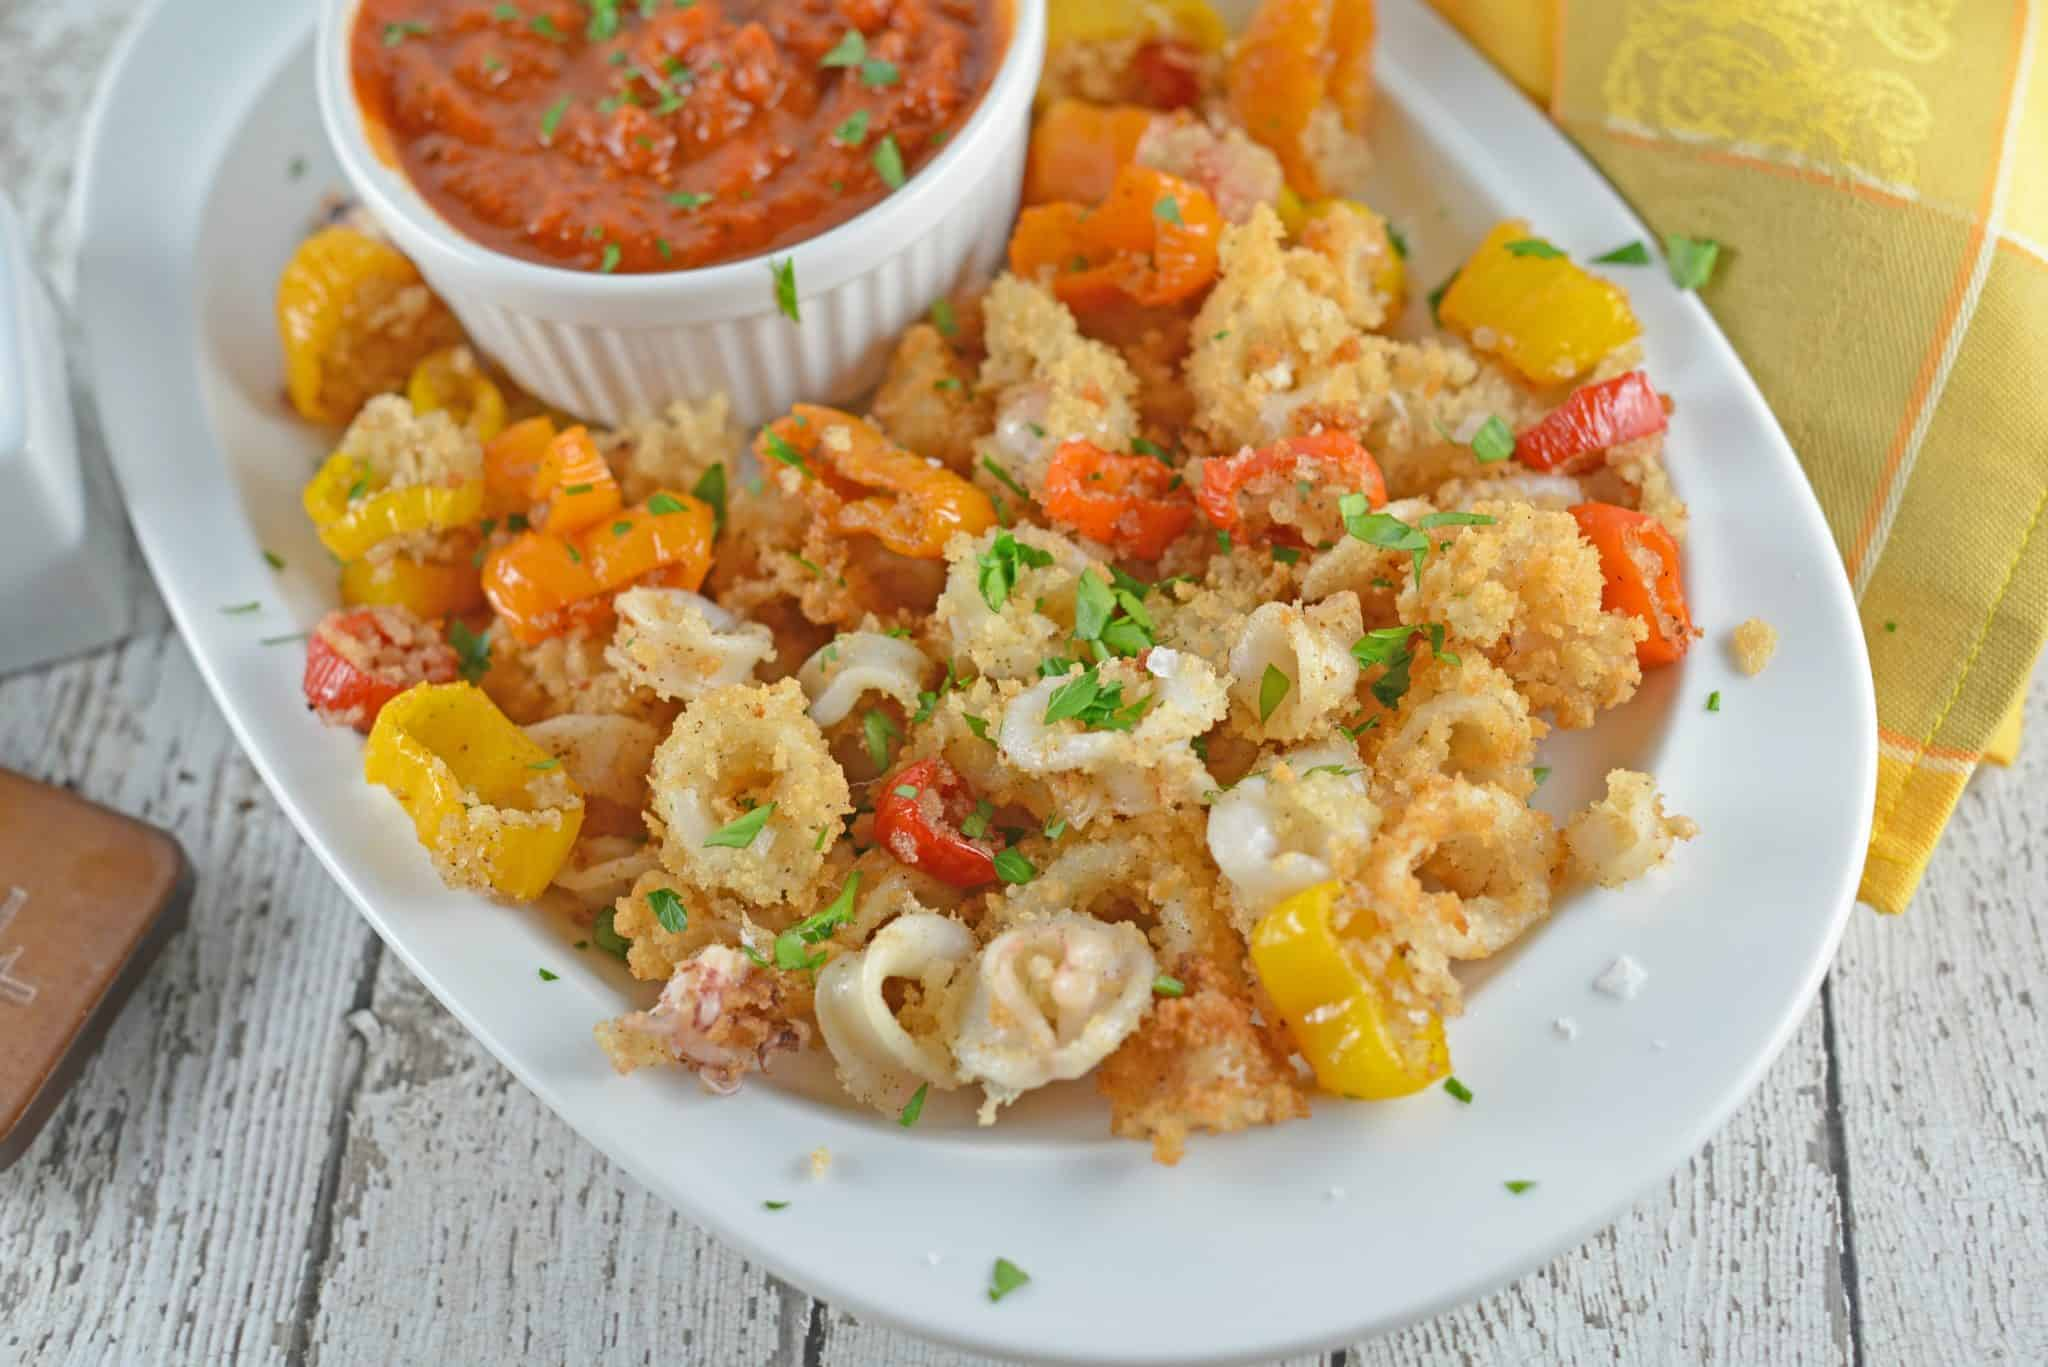 Fried Calamari are crispy squid fried to golden brown perfection. Battered Calamari is easy to make at home with a yummy calamari sauce!